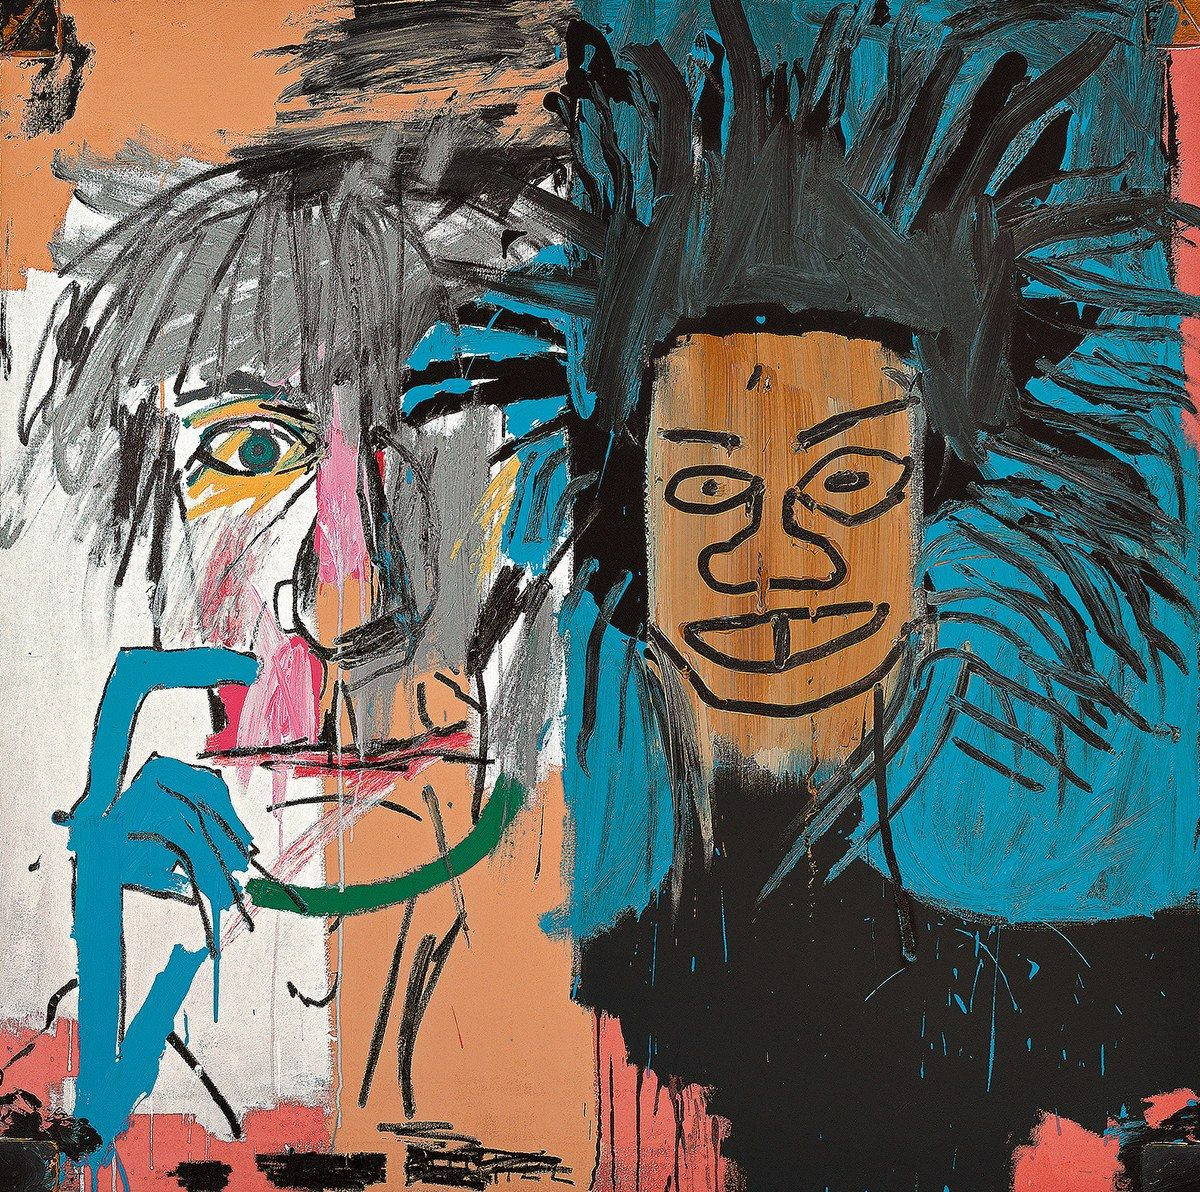 Andy Warhol, Jean-Michel Basquiat, and the Friendship That Defined the Art World in 1980s New York City